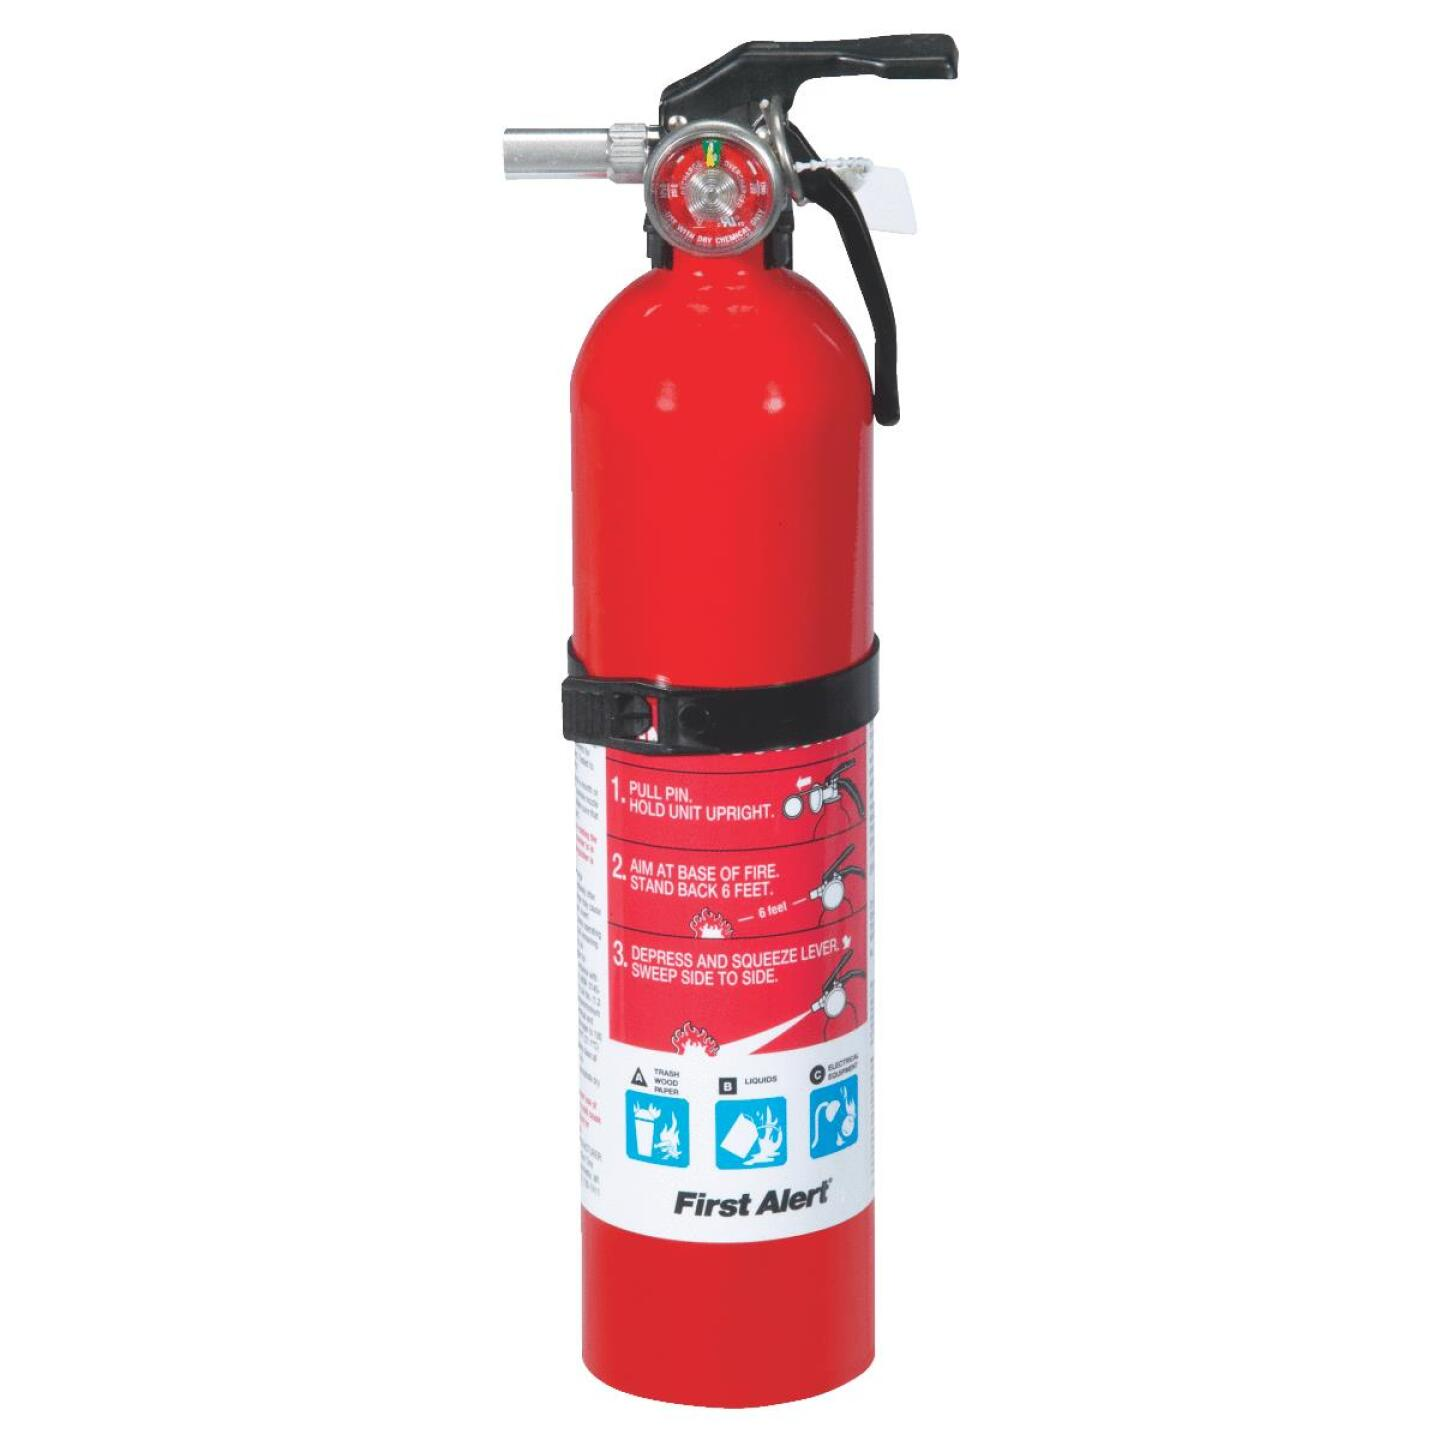 First Alert 1-A:10-B:C Rechargeable Home Fire Extinguisher Image 2